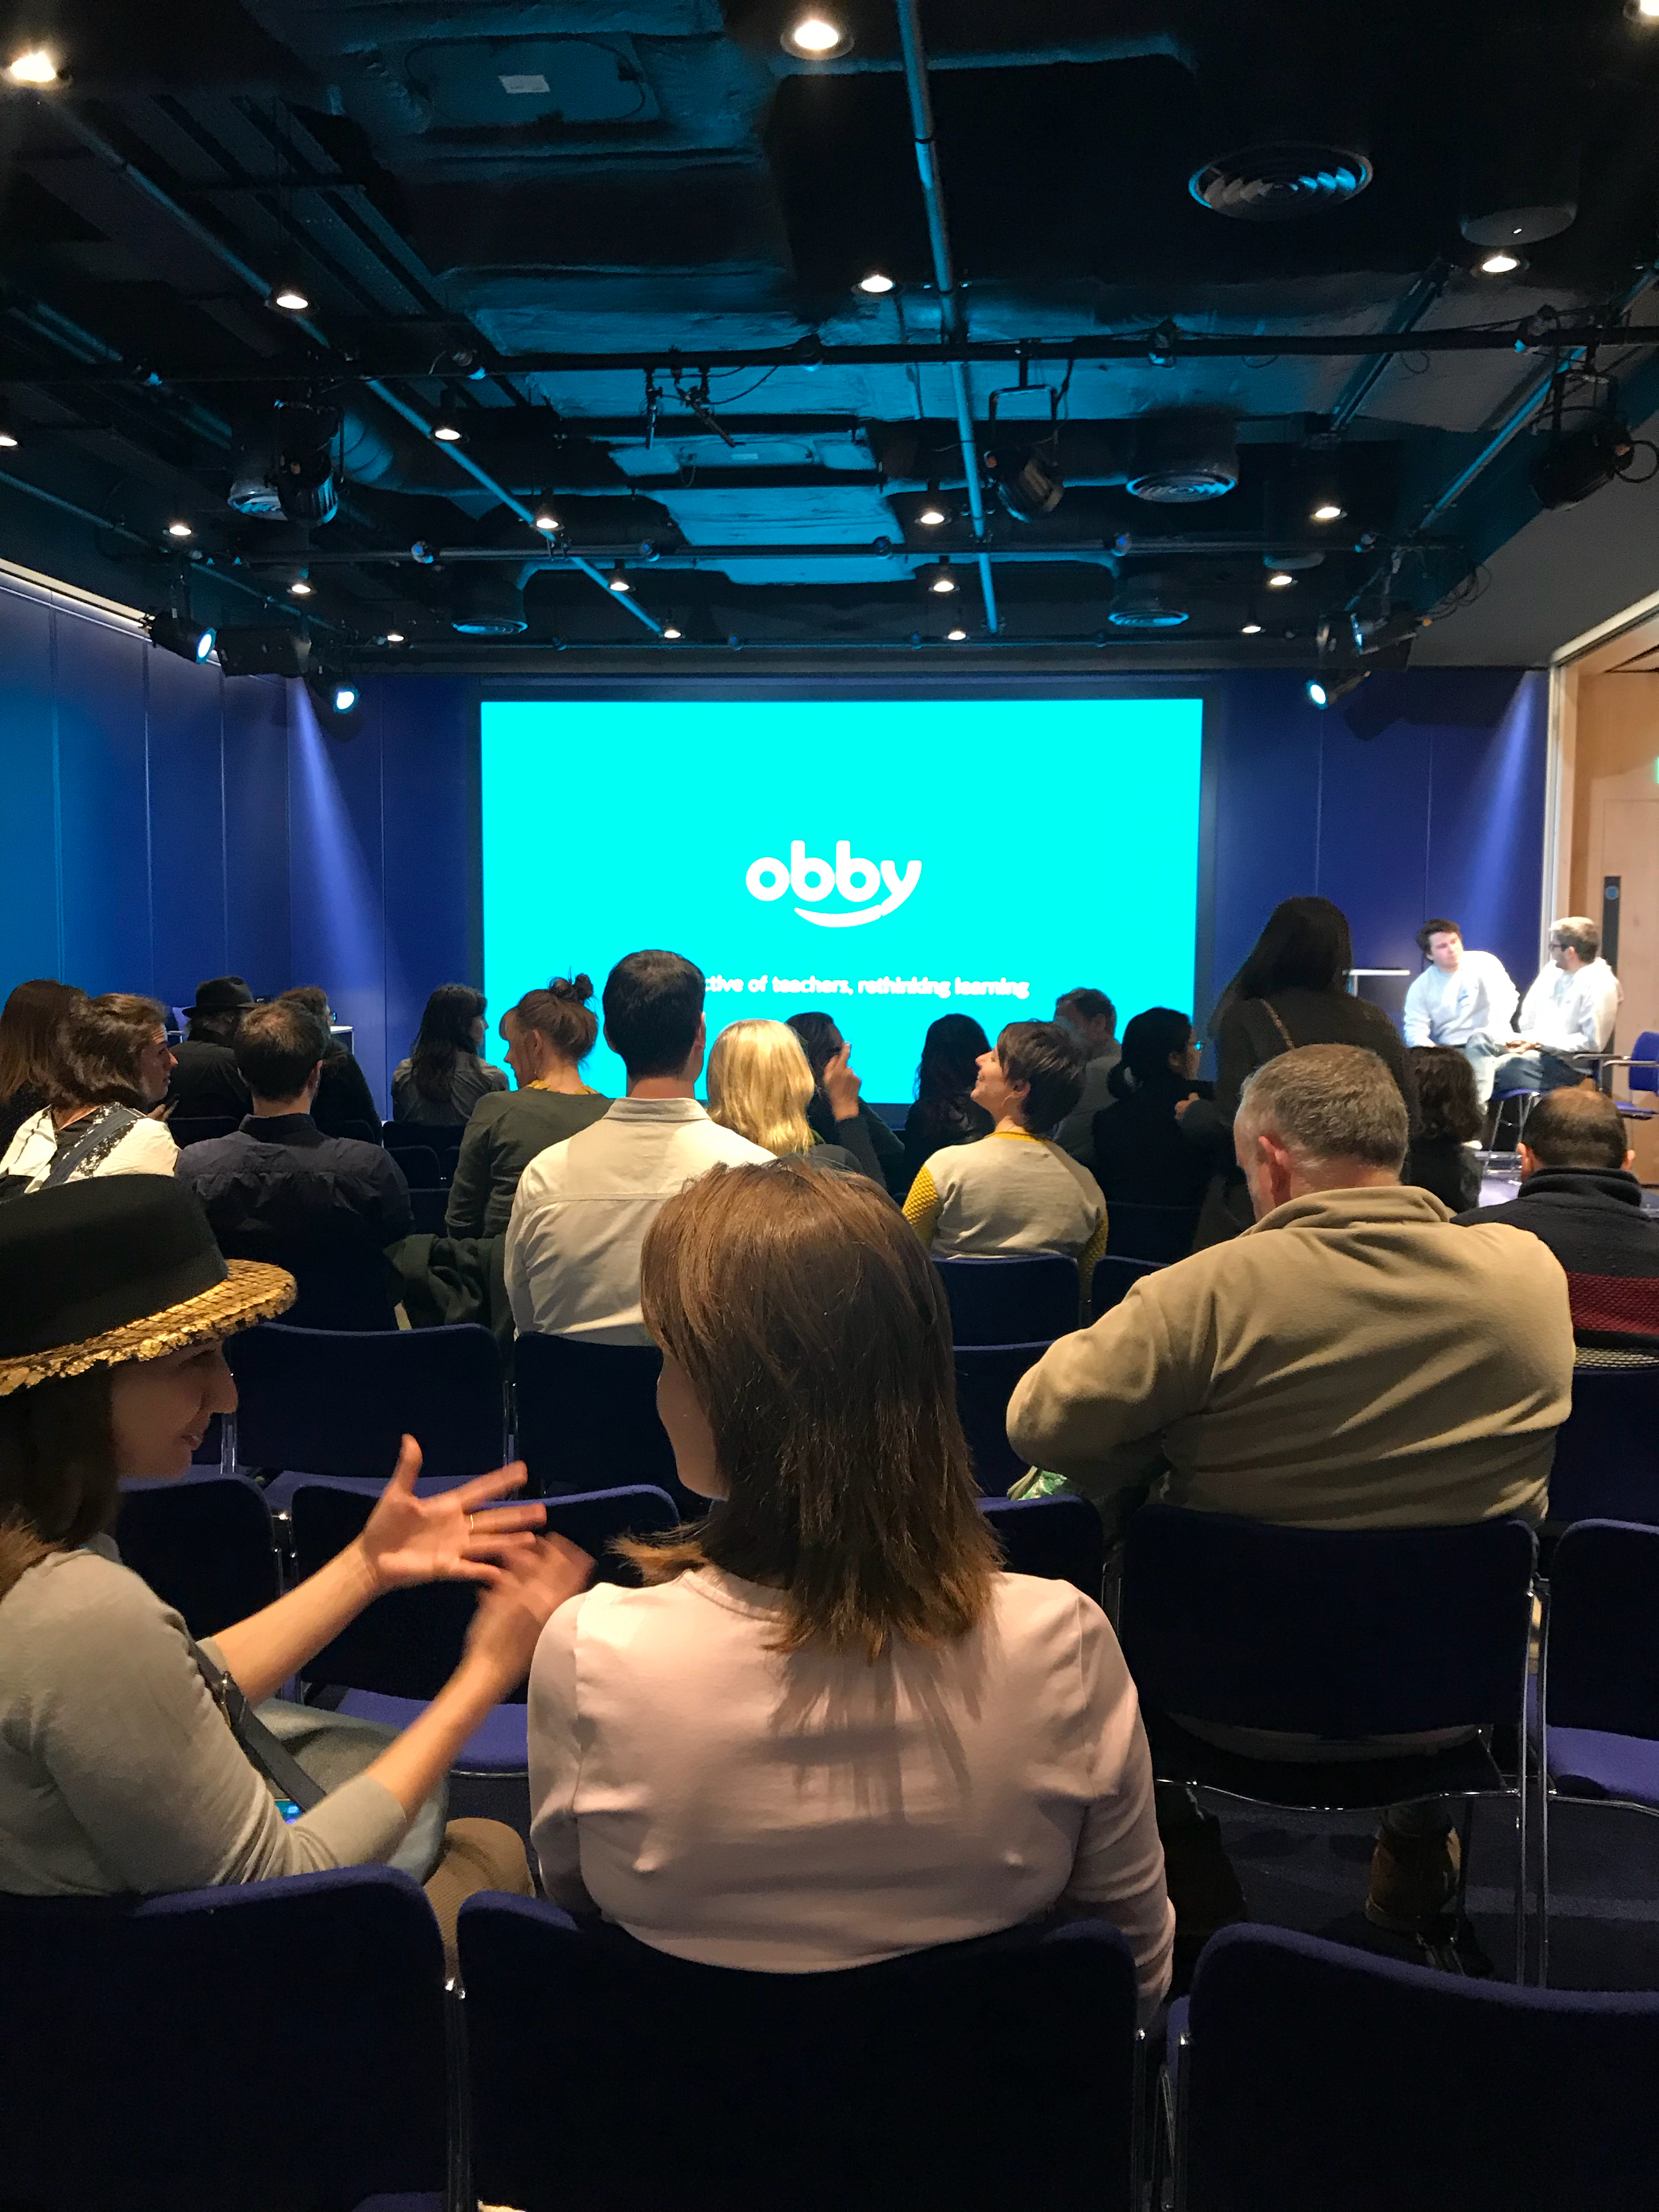 Obby Partners undefined classes in London